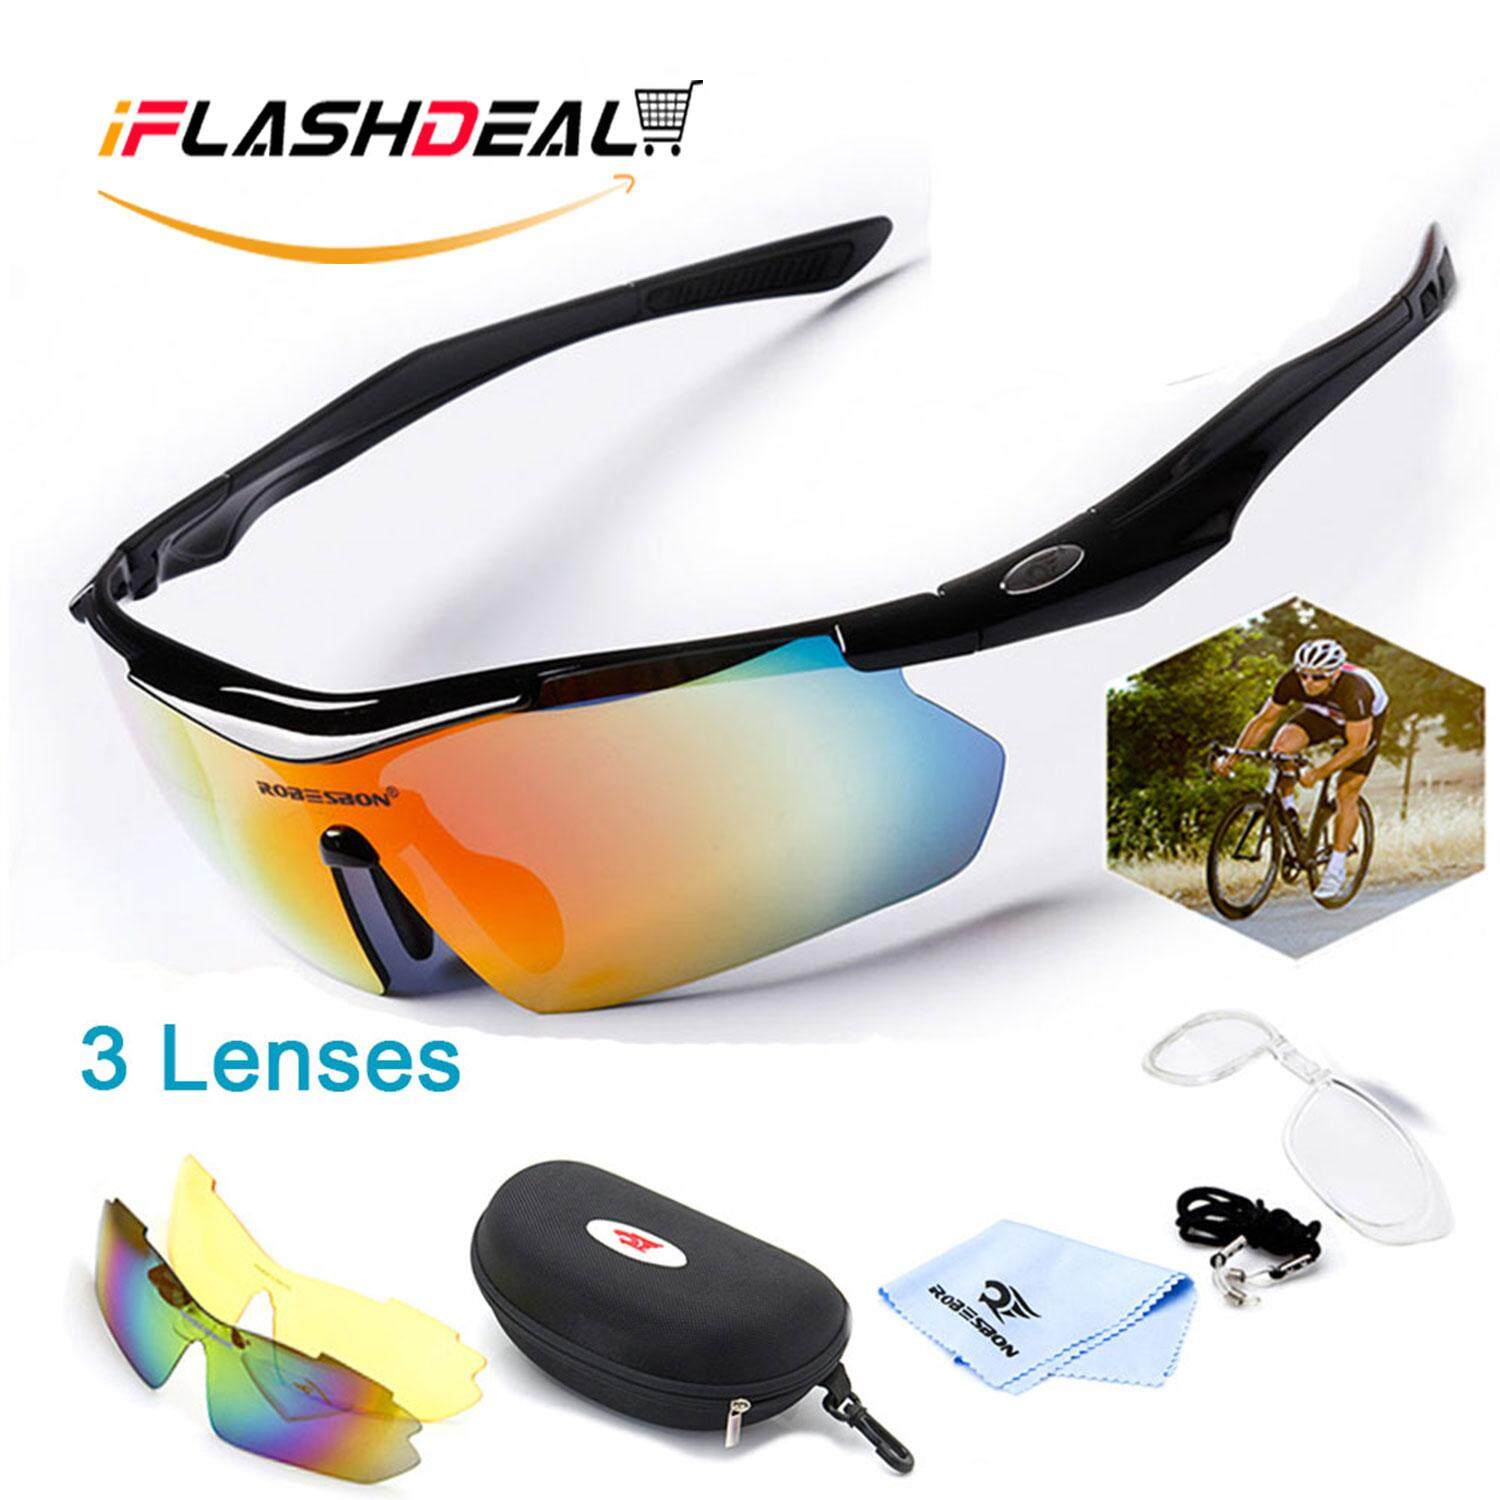 iFlashDeal【Global Express Delivery within 72 days】Men Sports Sunglasses Polarized Outdoor Sport Driving Male Women Sun Glasses Cycling Riding Running Glasses with 3 Interchangeable Lenses